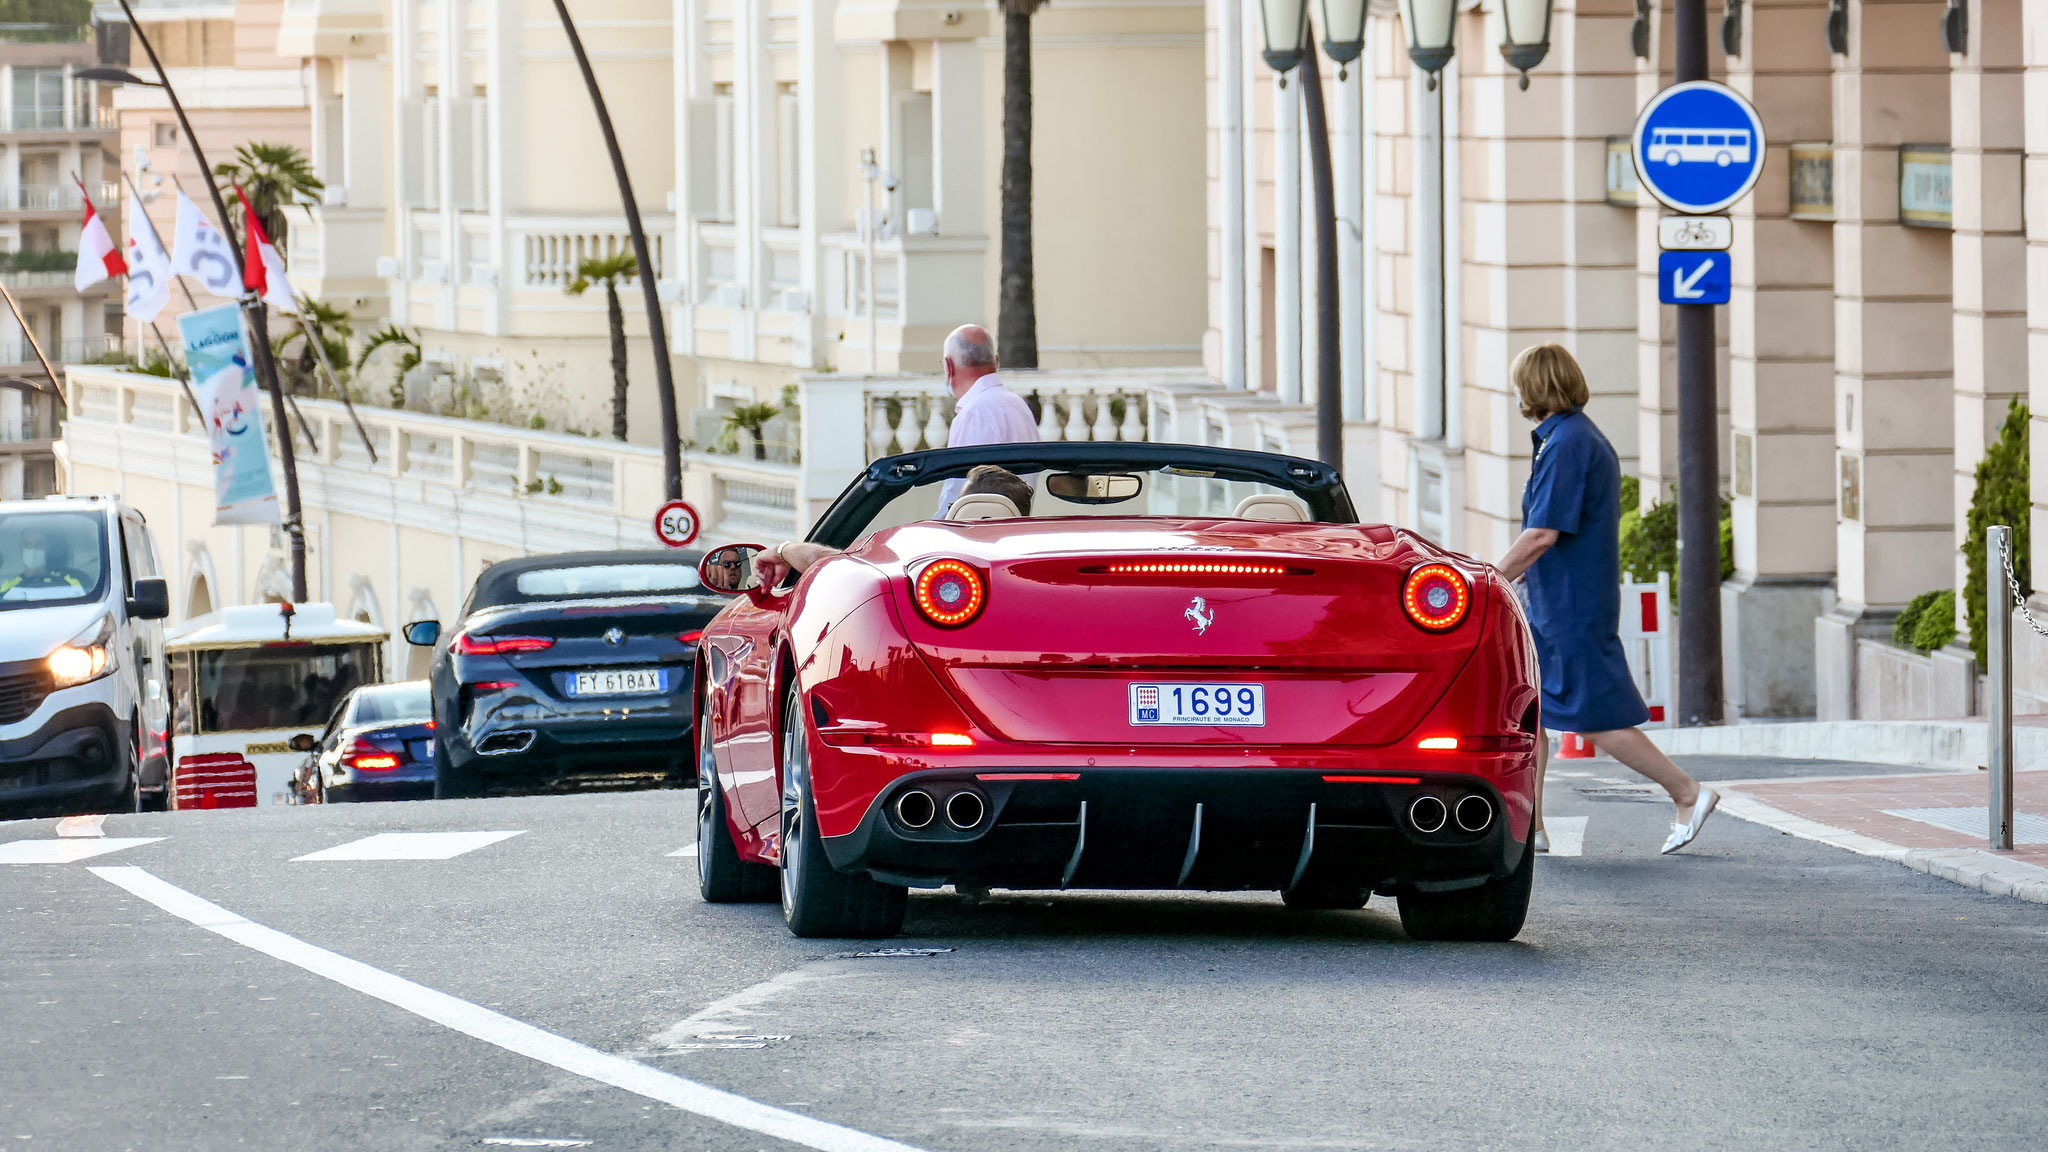 Ferrari California T - 1699 (MC)